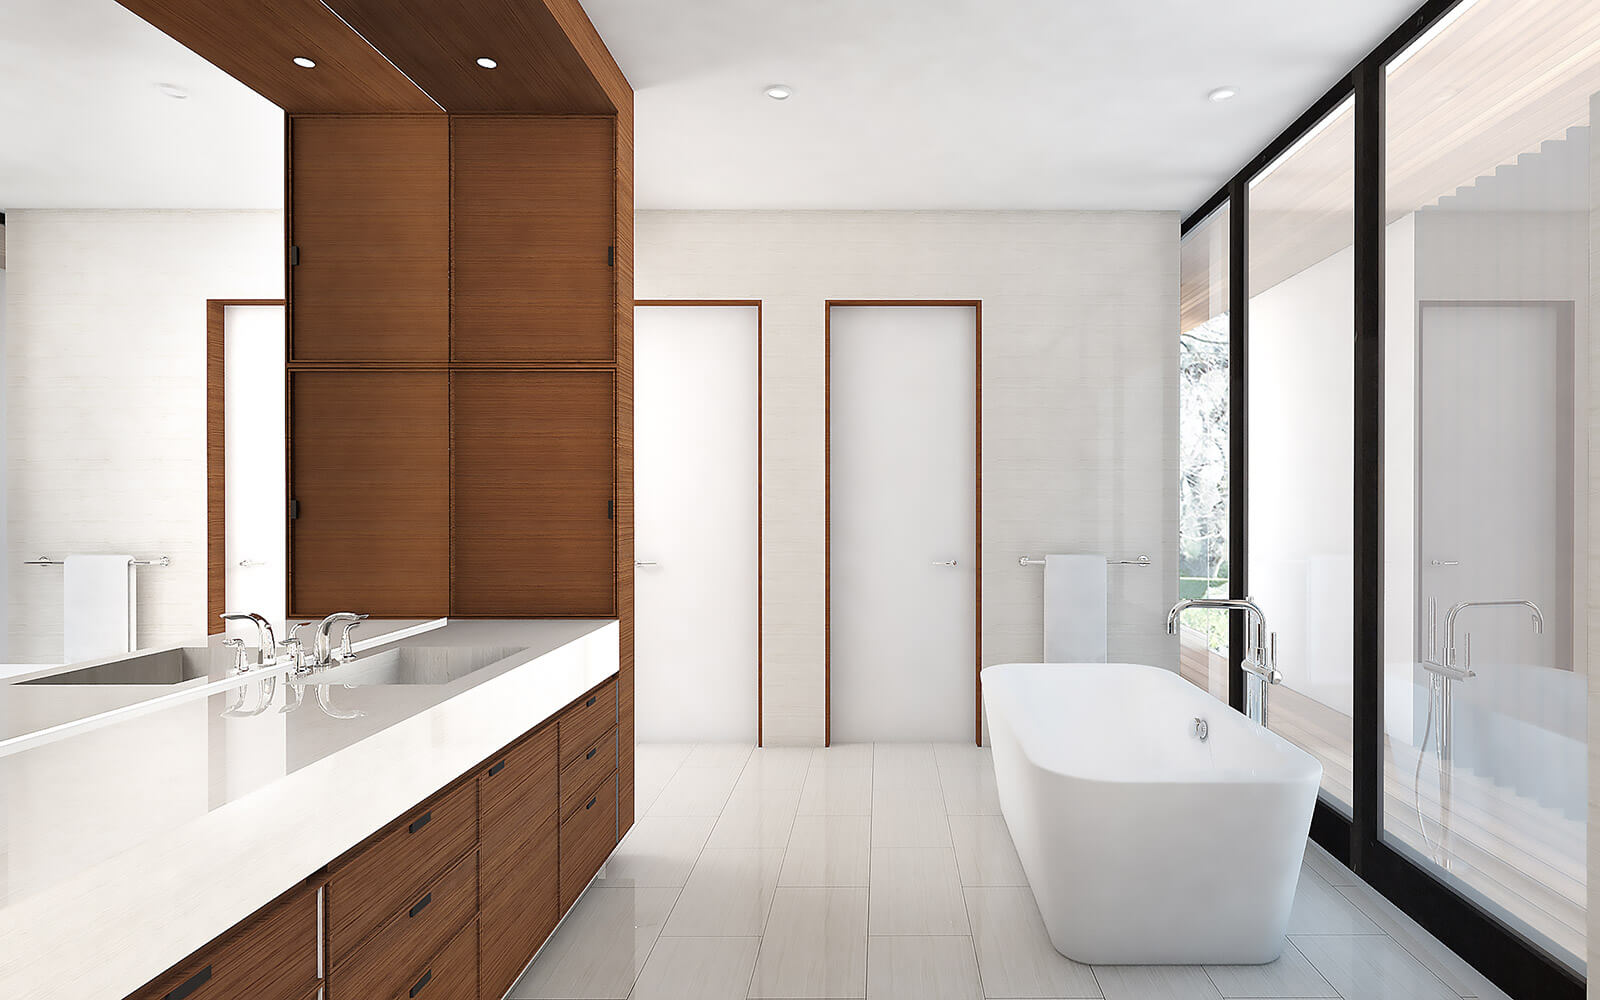 studio vara residential woodside i bathroom rendering